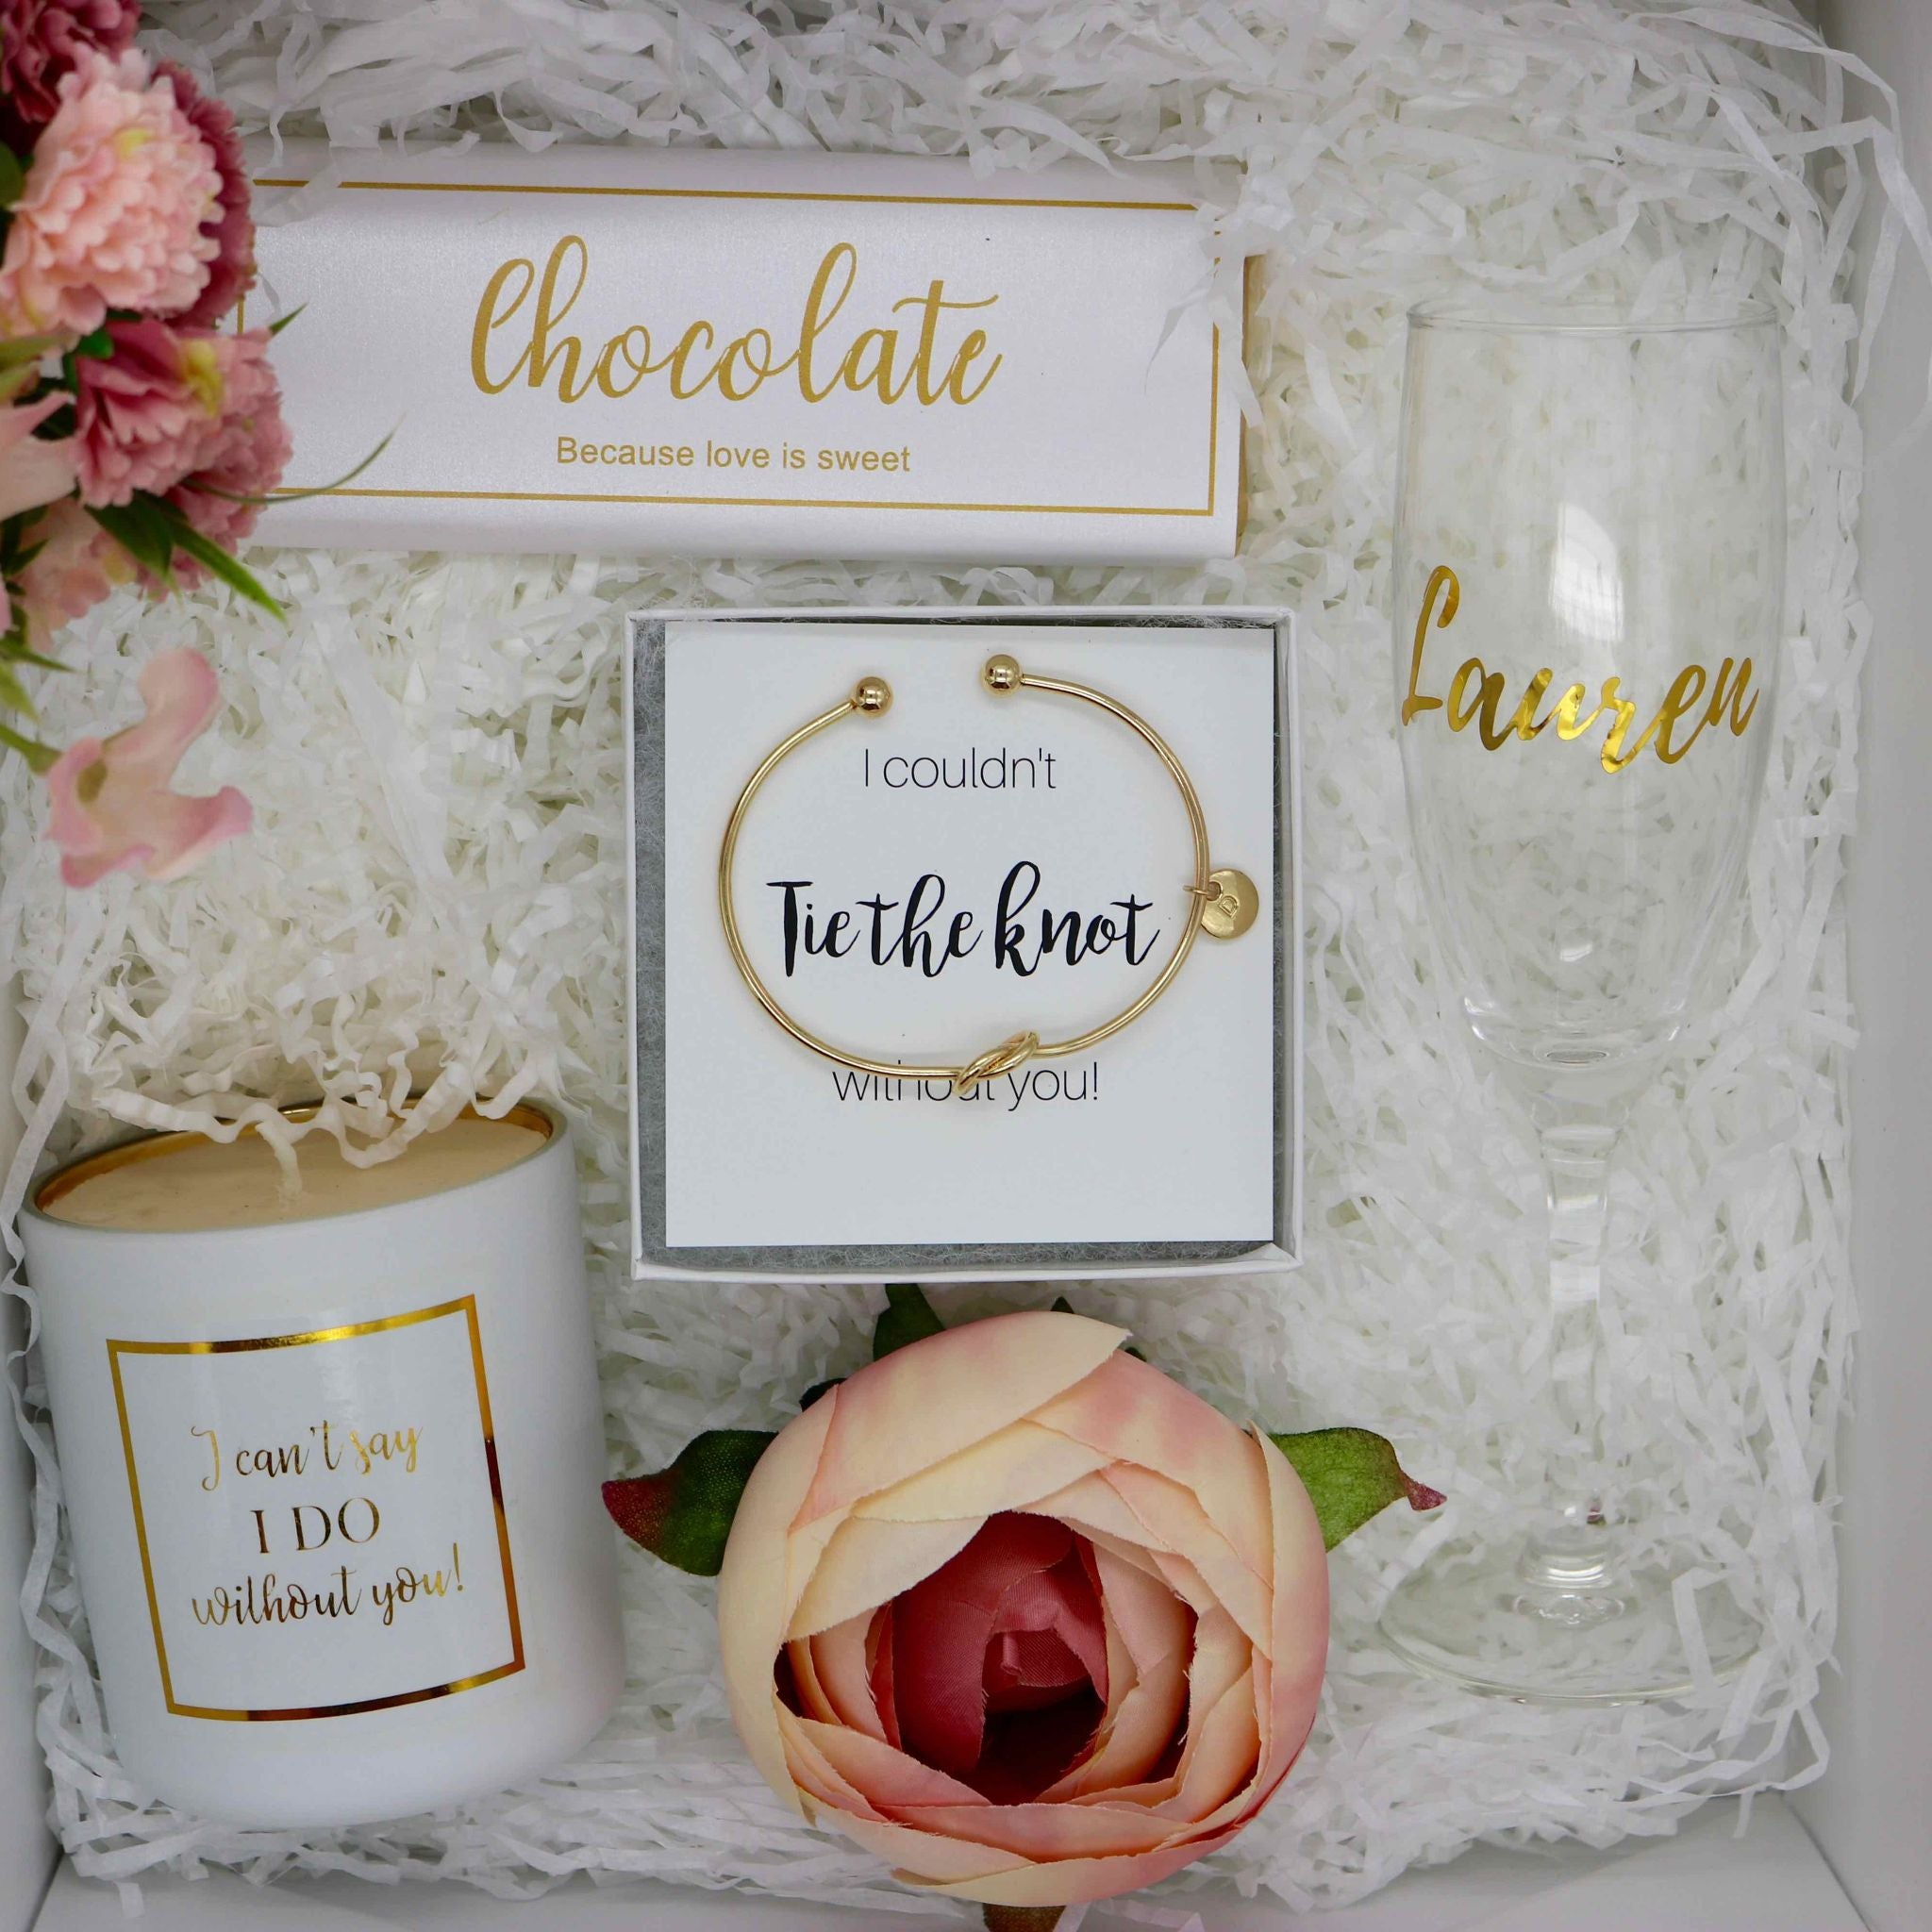 The Lily Gift Maid of Honour Proposal Gift Box